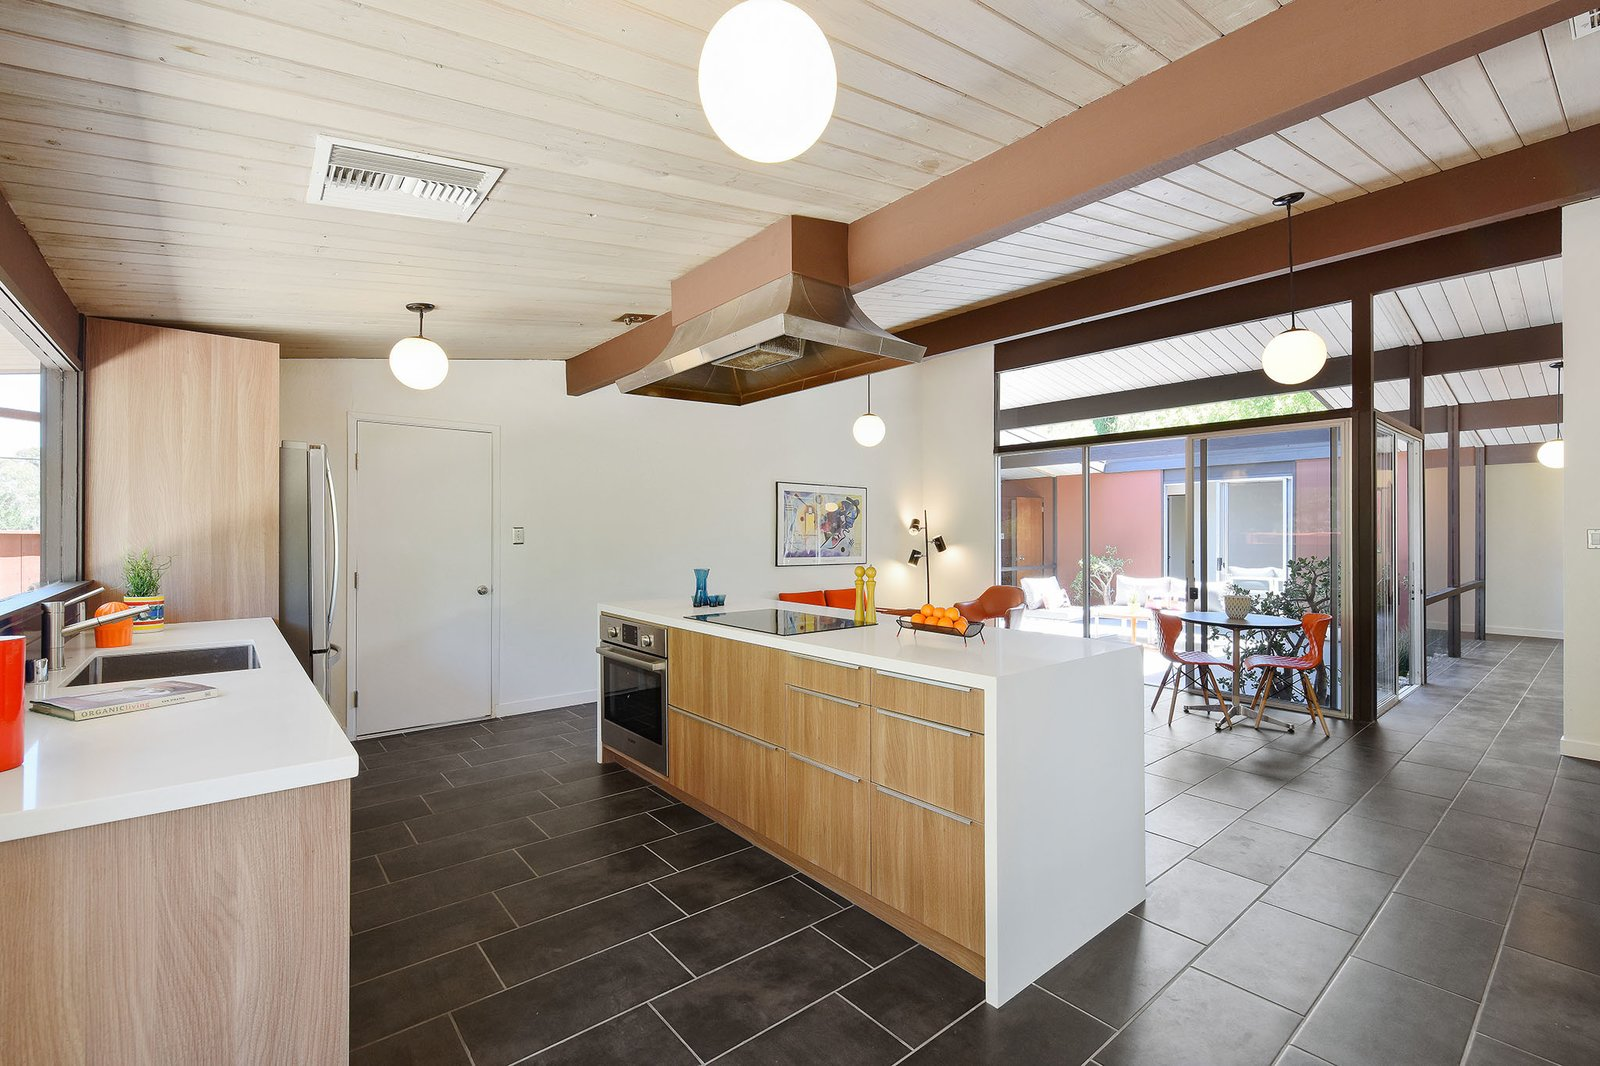 Kitchen, Drop In, Cooktops, Wood, Porcelain Tile, Pendant, Range Hood, and Wall Oven There is new porcelain tile flooring throughout.     Best Kitchen Pendant Range Hood Porcelain Tile Wood Photos from A Bright and Breezy Eichler Hits the Market at $1.45M in California